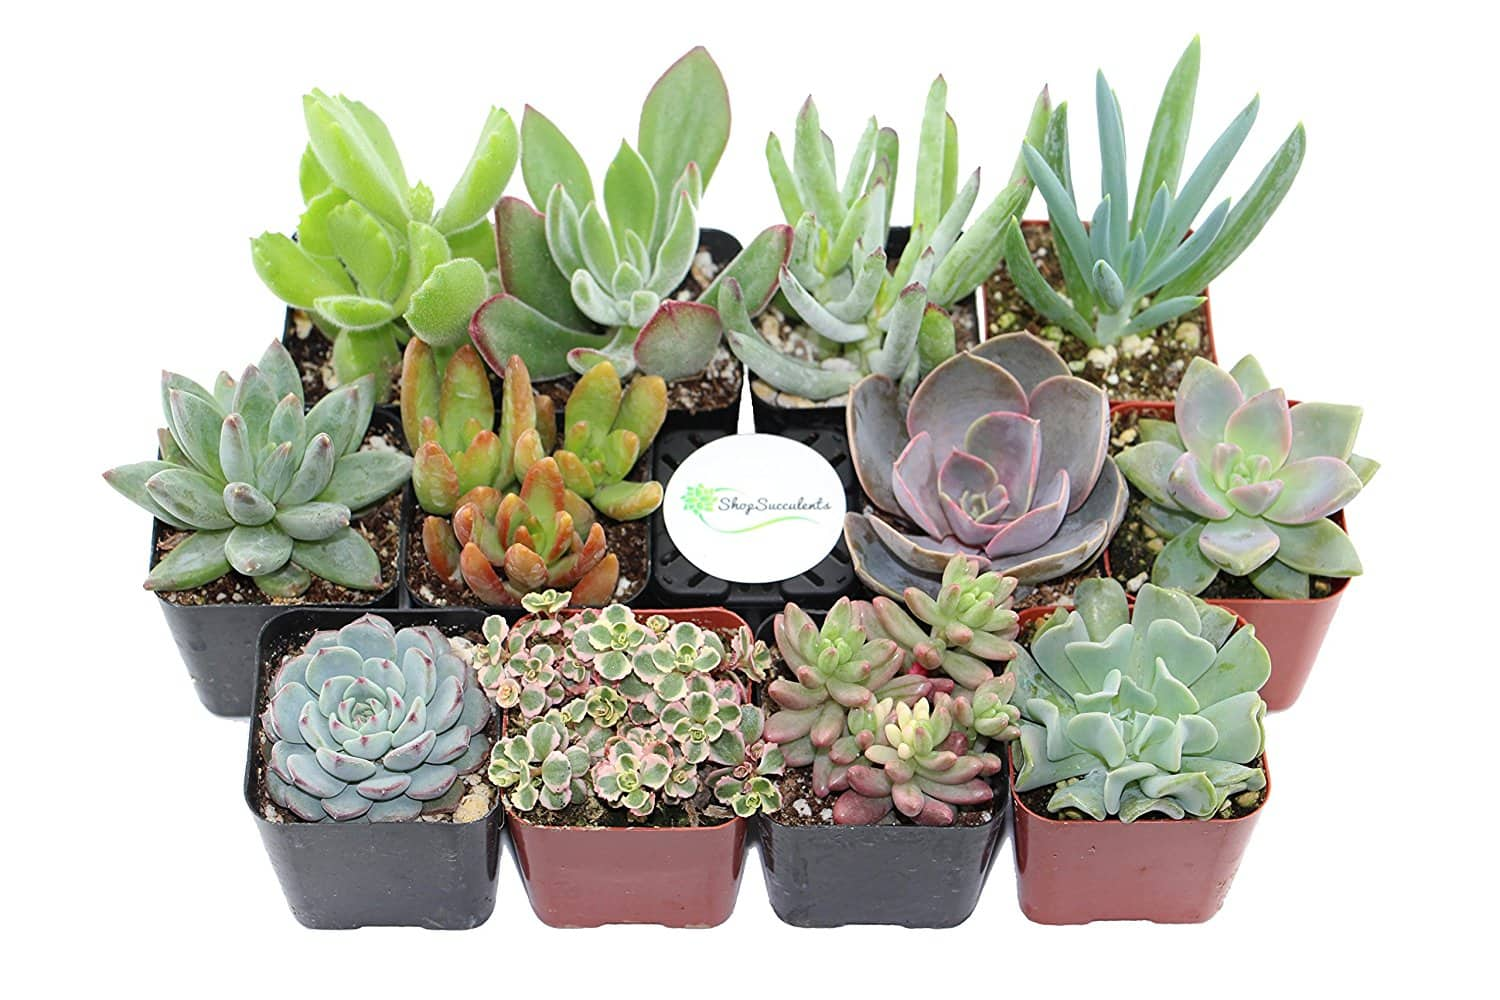 Shop Succulents Unique Succulent (Collection of 12) $24.74 FS w/ Prime @Amazon